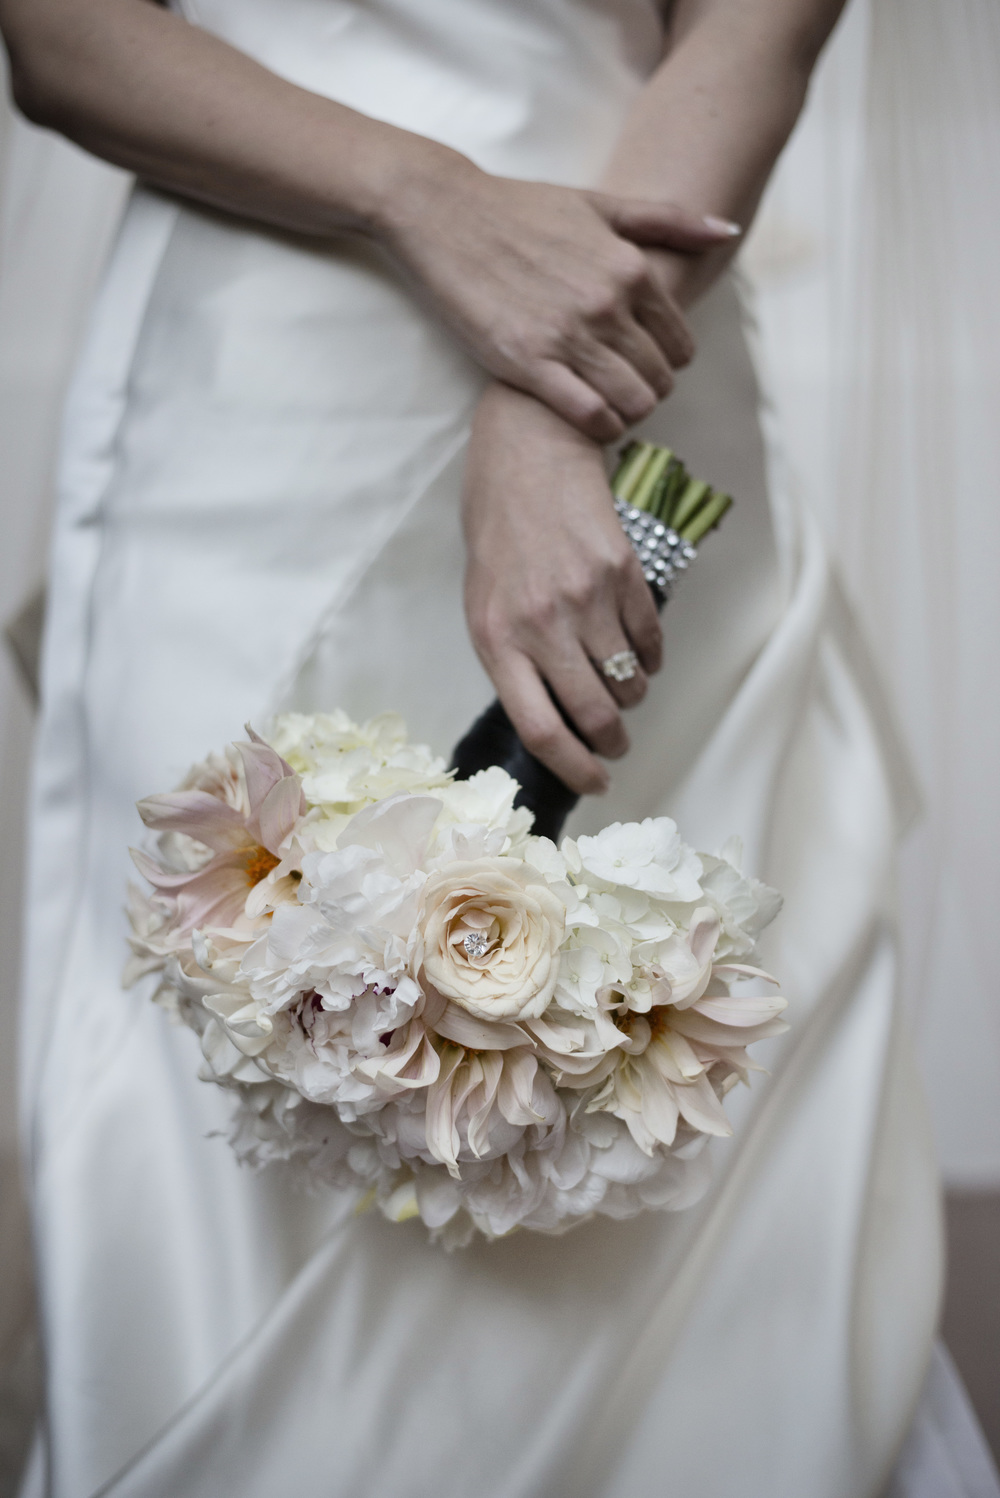 Bridal Bouquet in timeless colors of white, ivory, and blush. An Intimate Wedding at Four Seasons Las Vegas.